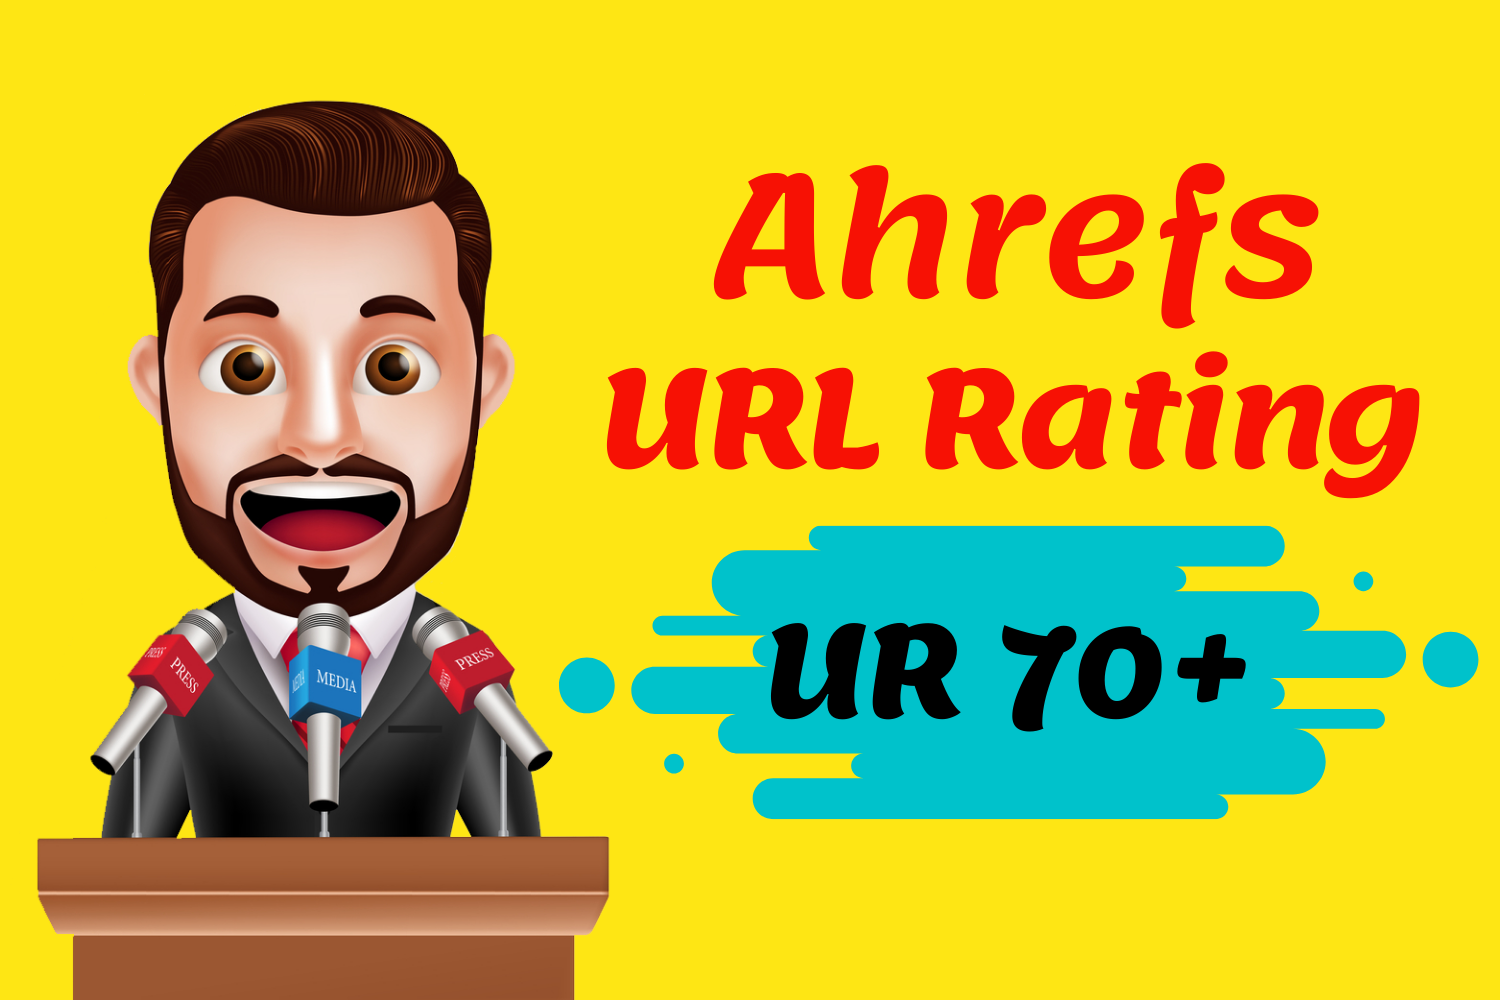 I Will Increase Ahrefs URL Rating 70 Plus